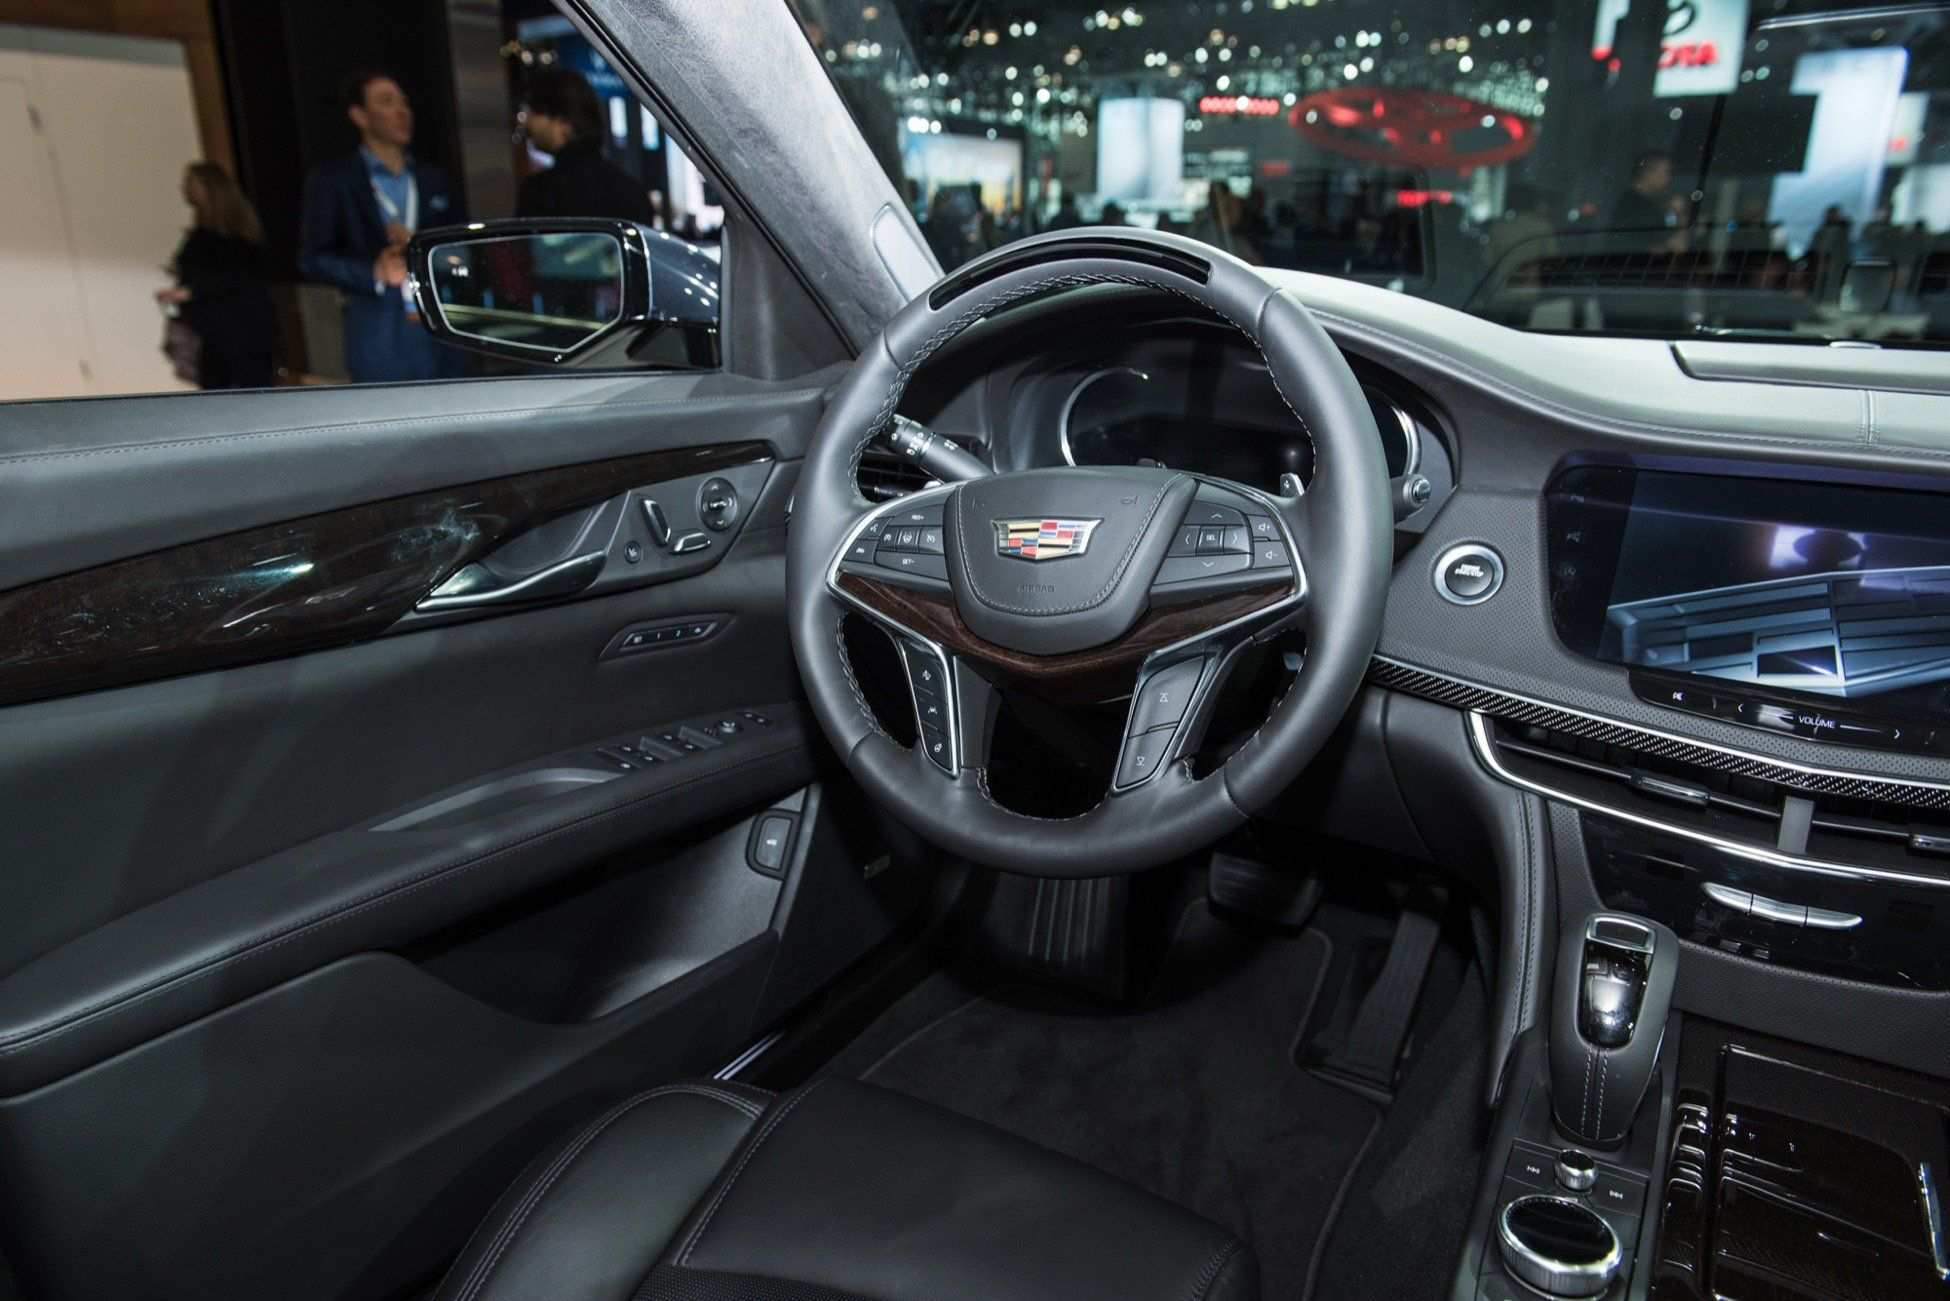 80 Great The Cadillac 2019 Interior Performance Specs for The Cadillac 2019 Interior Performance